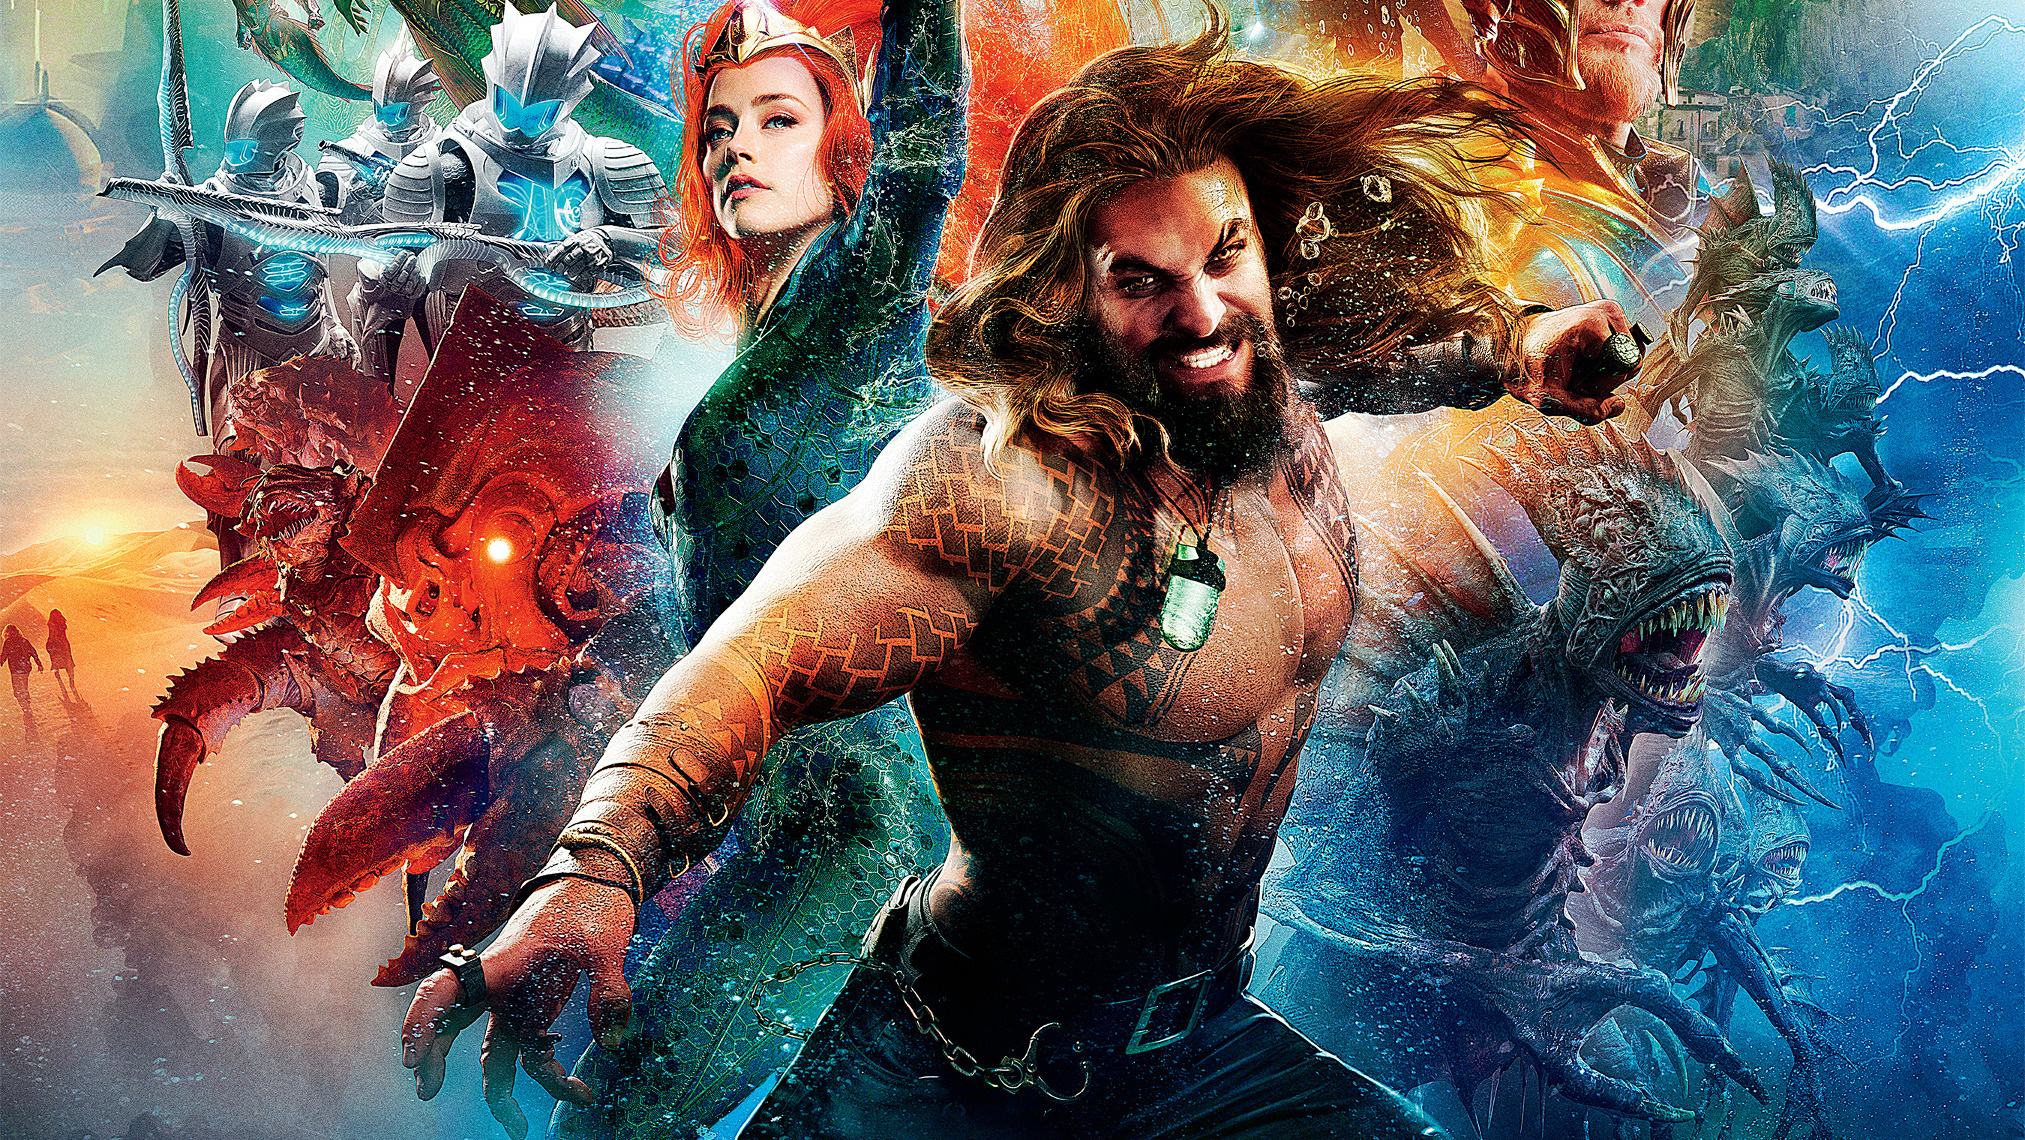 Aquaman 2018 Movie Hd Movies 4k Wallpapers Images Backgrounds